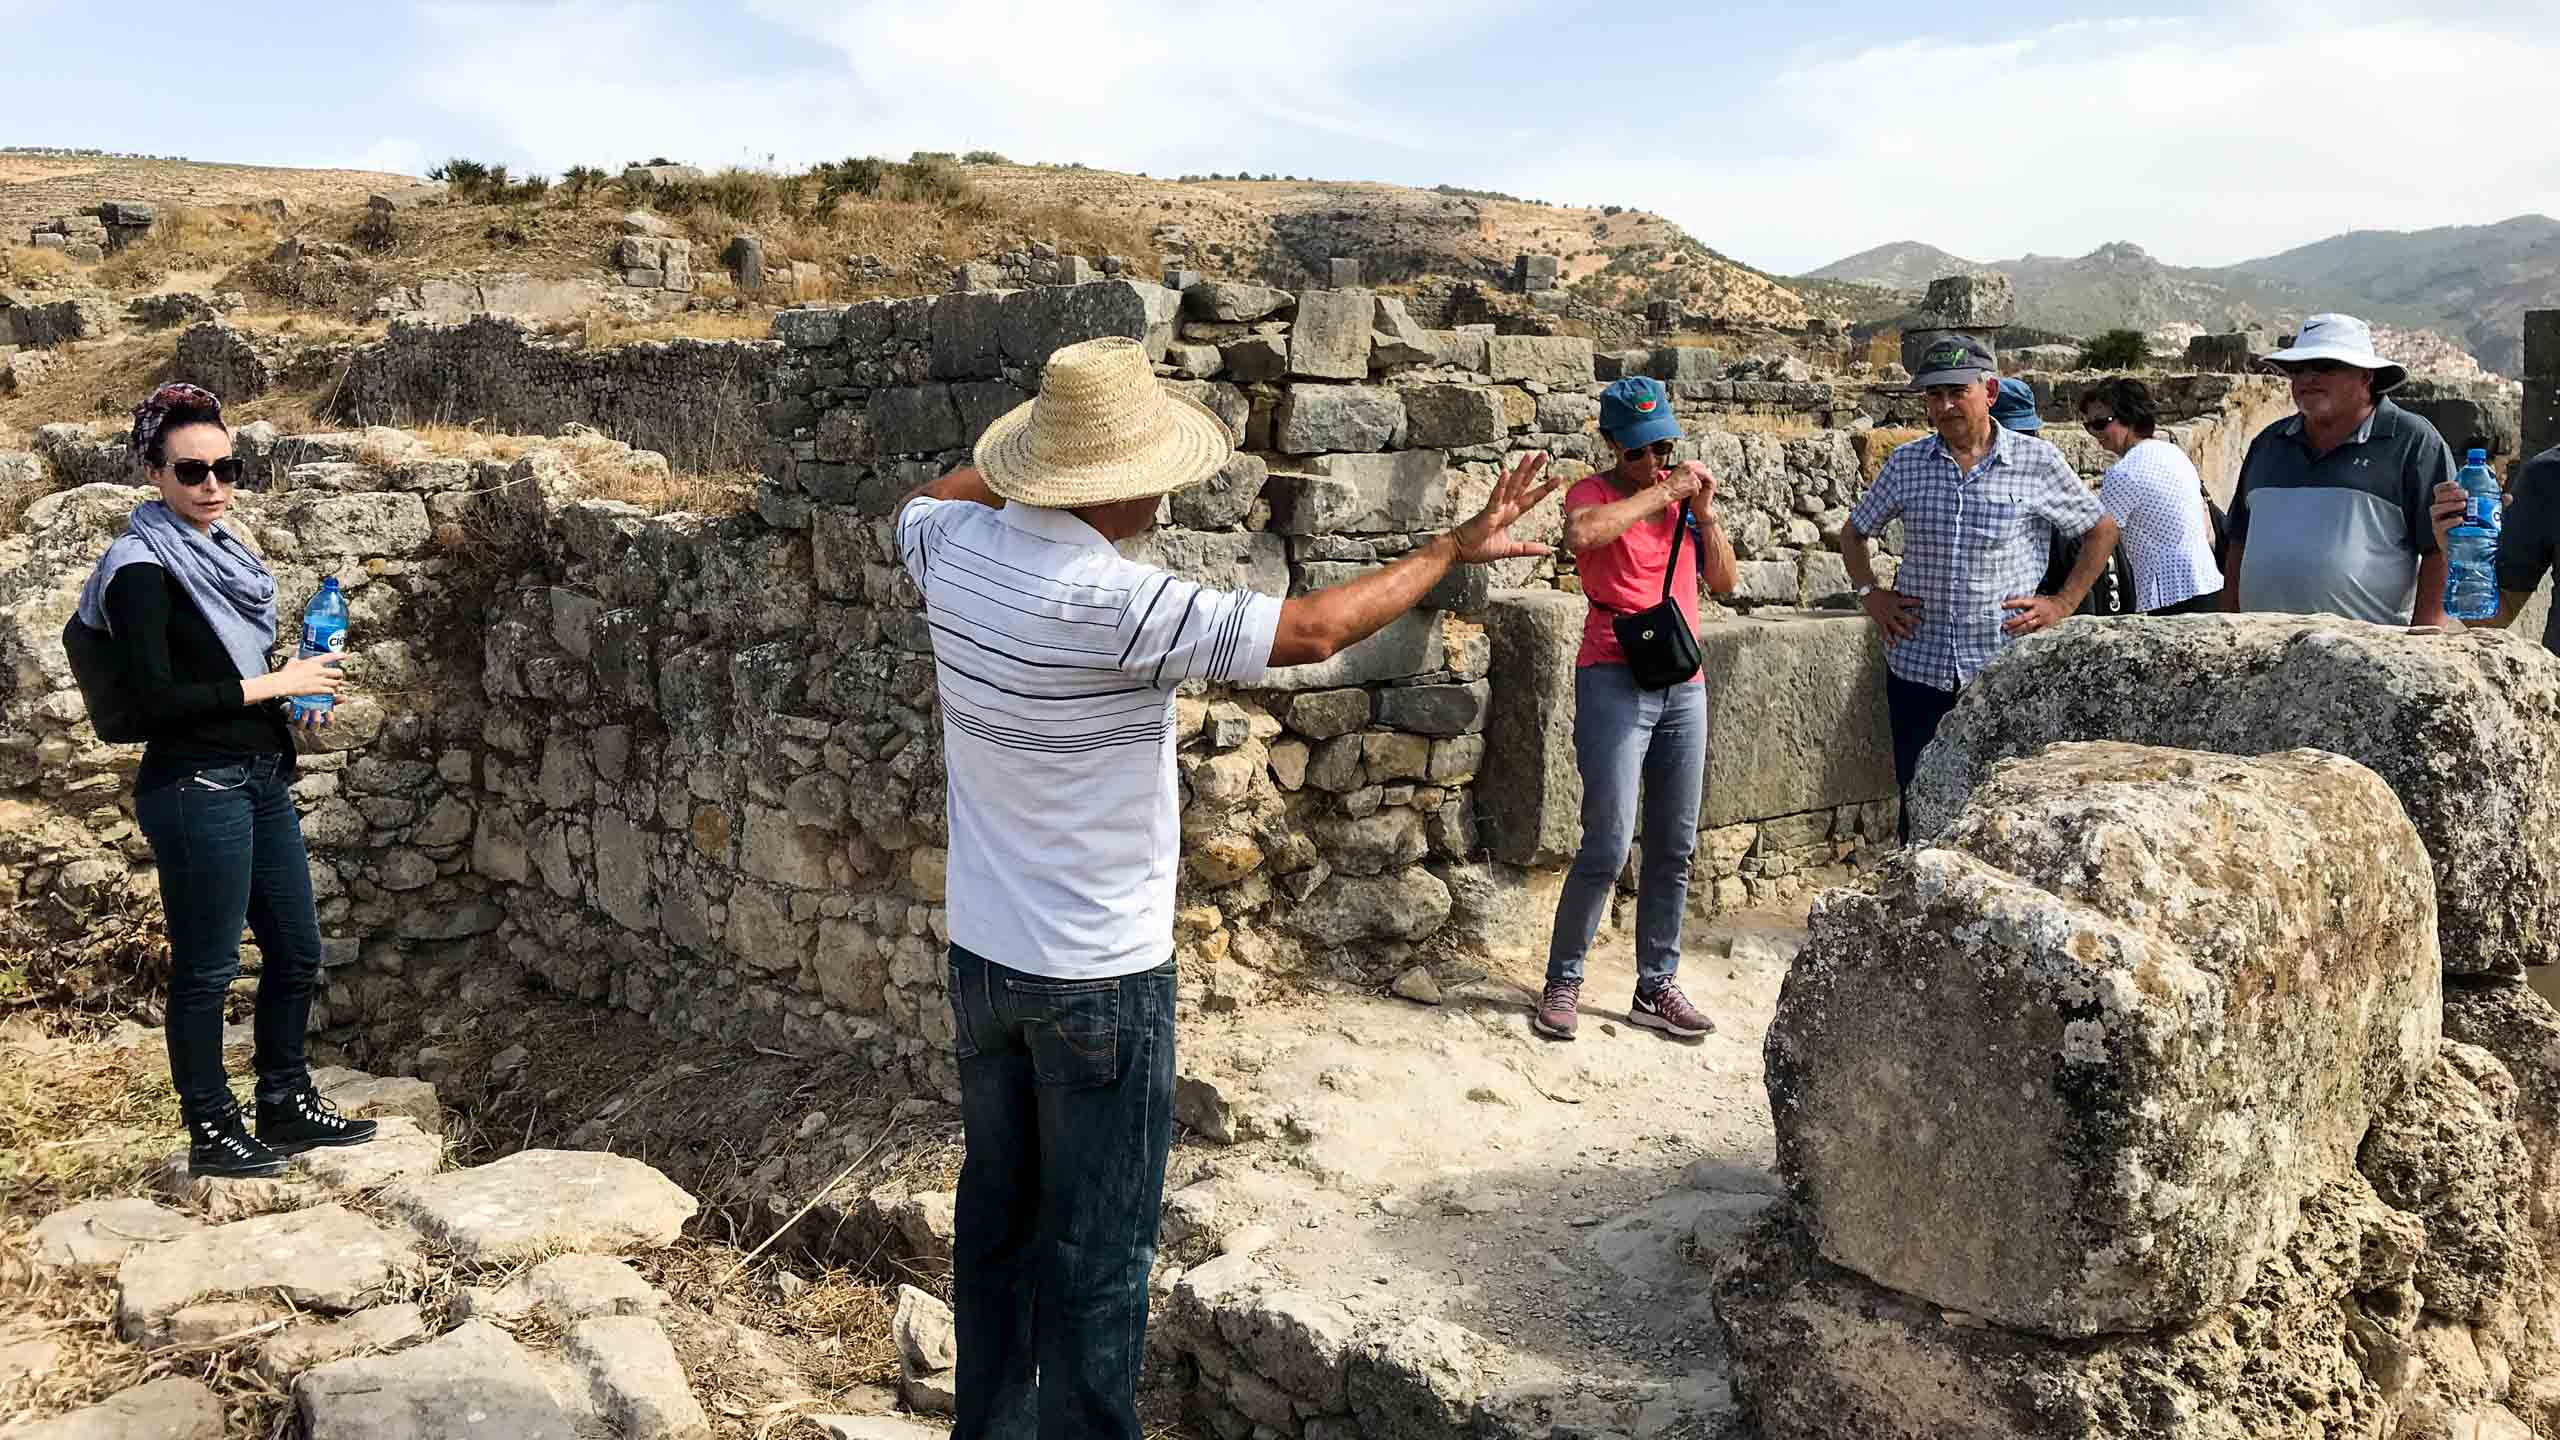 Tour group explores Morocco ruins